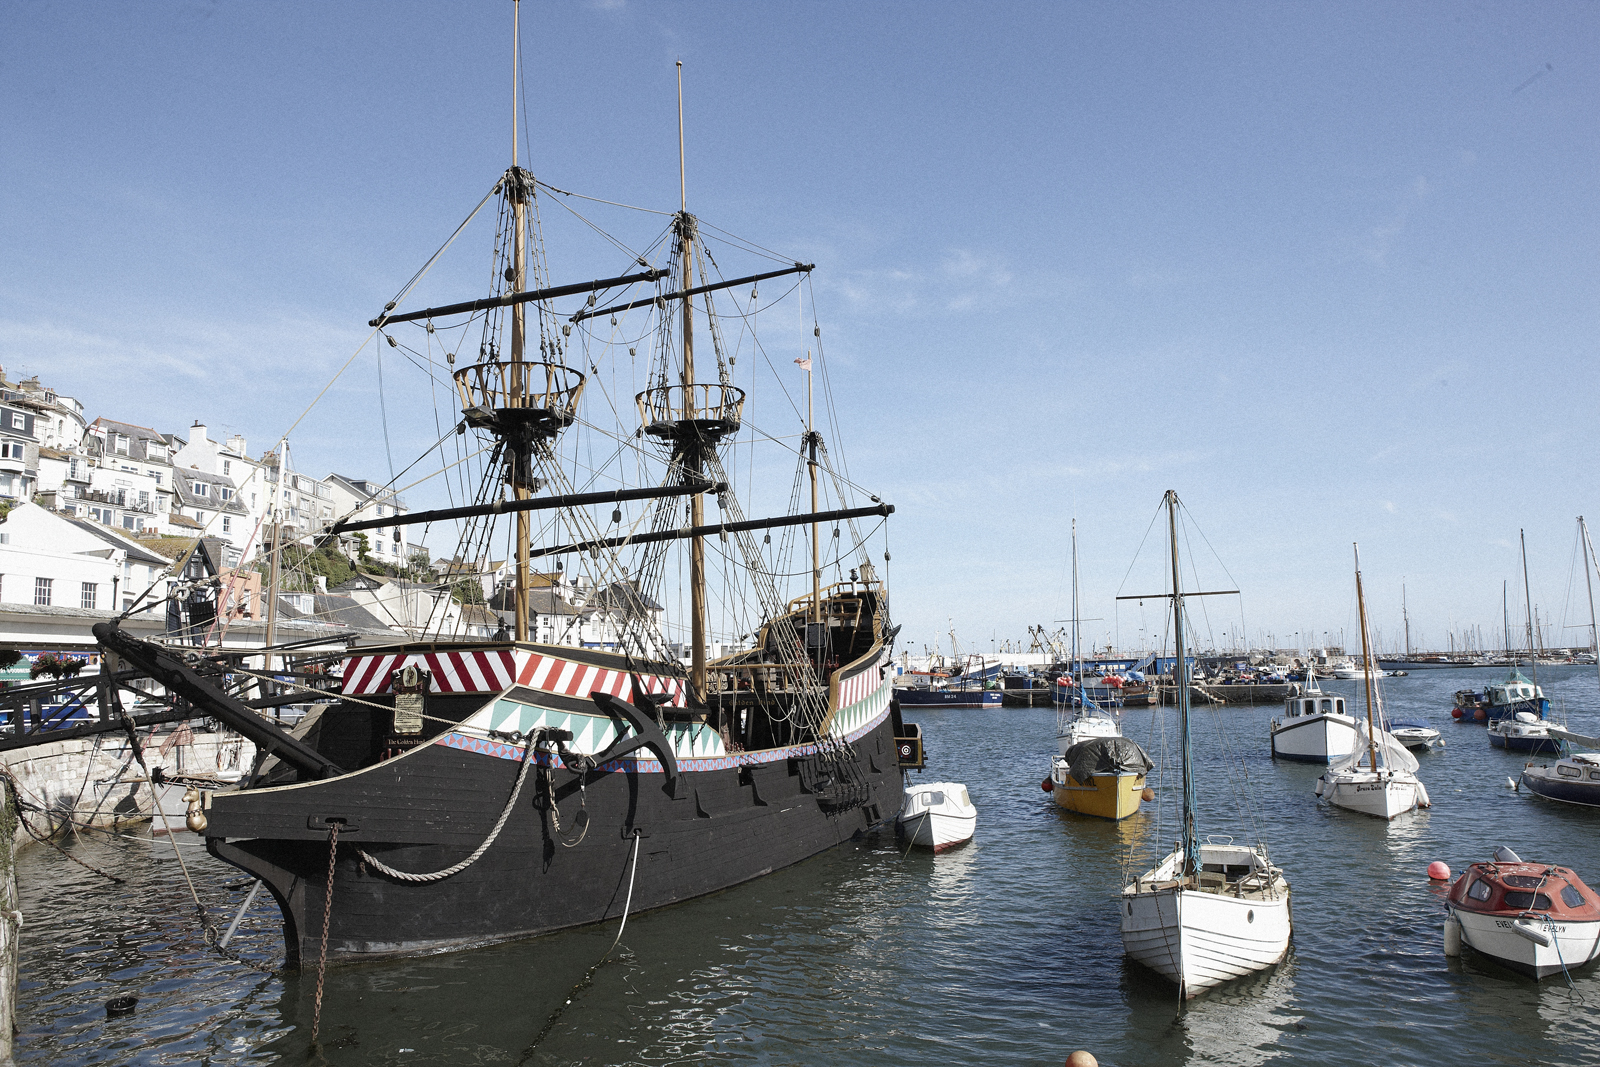 Golden Hind in Brixham - Dog Friendly visitor attraction